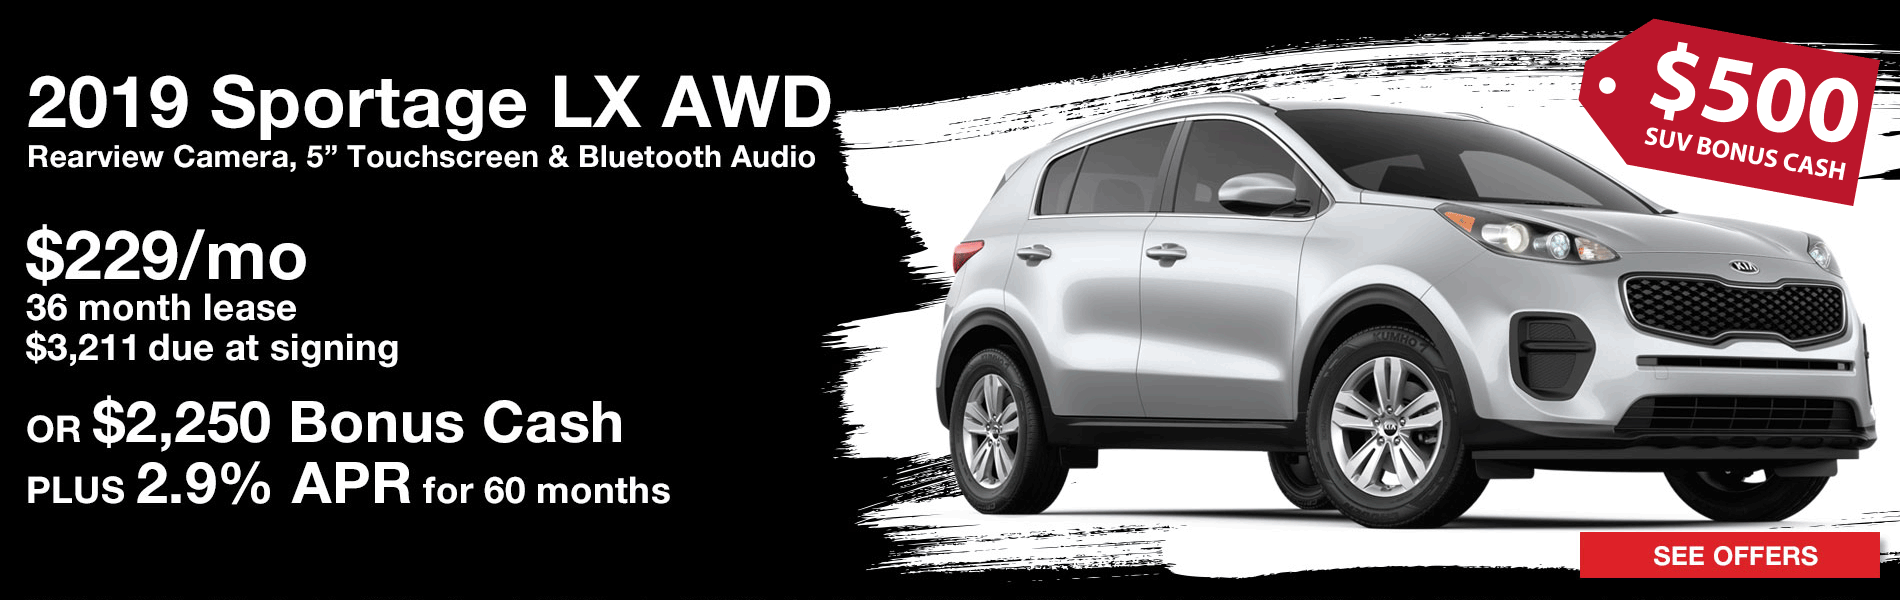 Lease a 2019 Kia Sportage LX AWD for $229 per month with $3,211 due at signing plus $500 SUV Bonus Cash